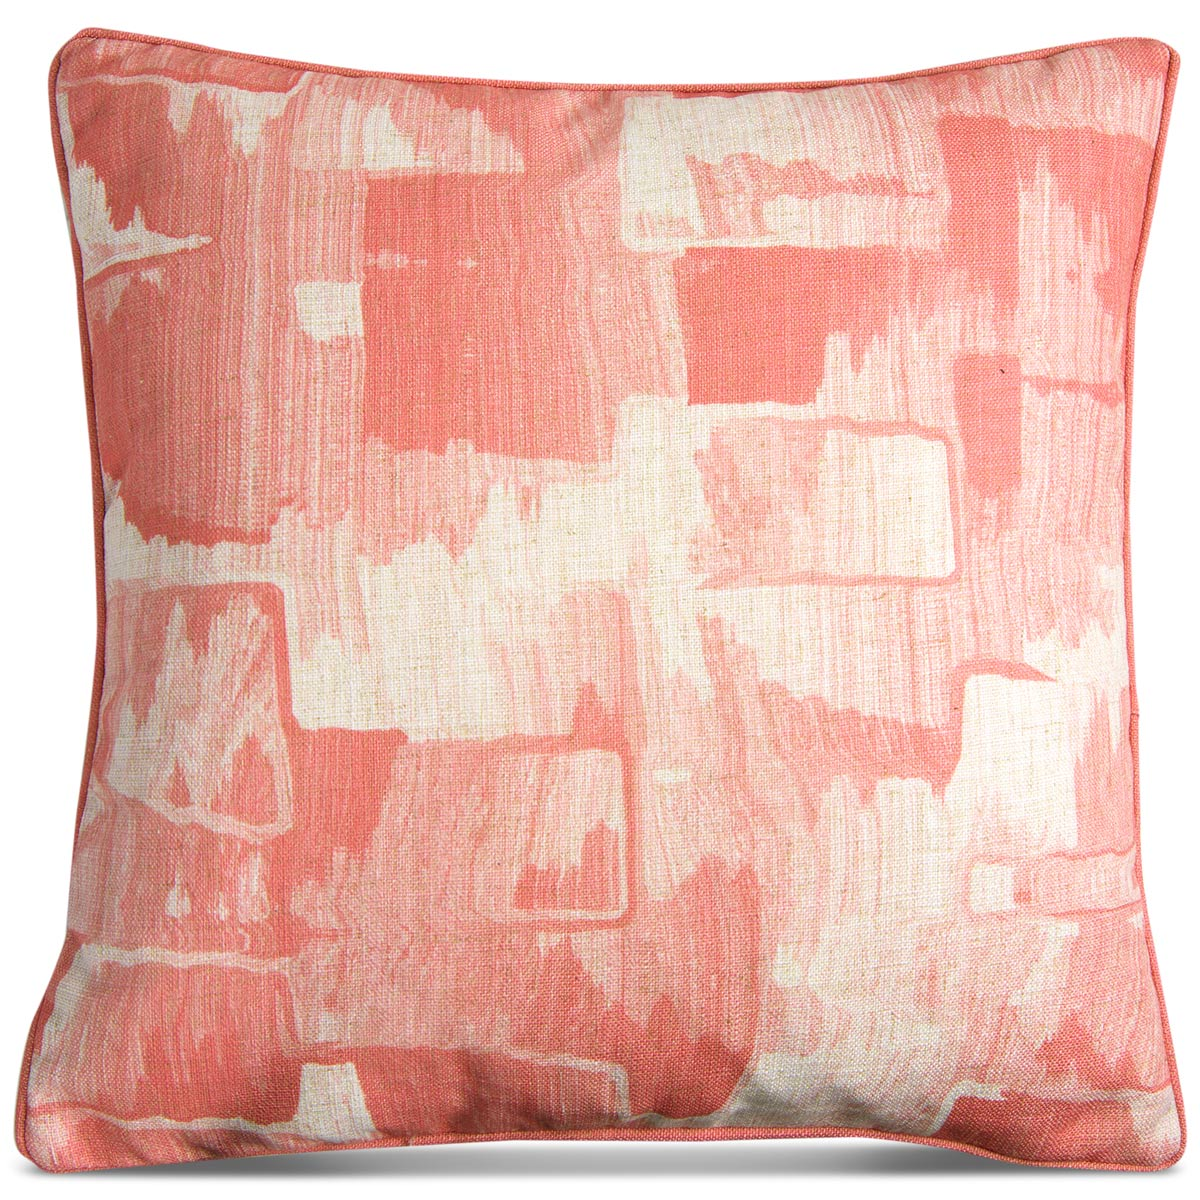 Denim Abstract Pillow in Blush - ModShop1.com